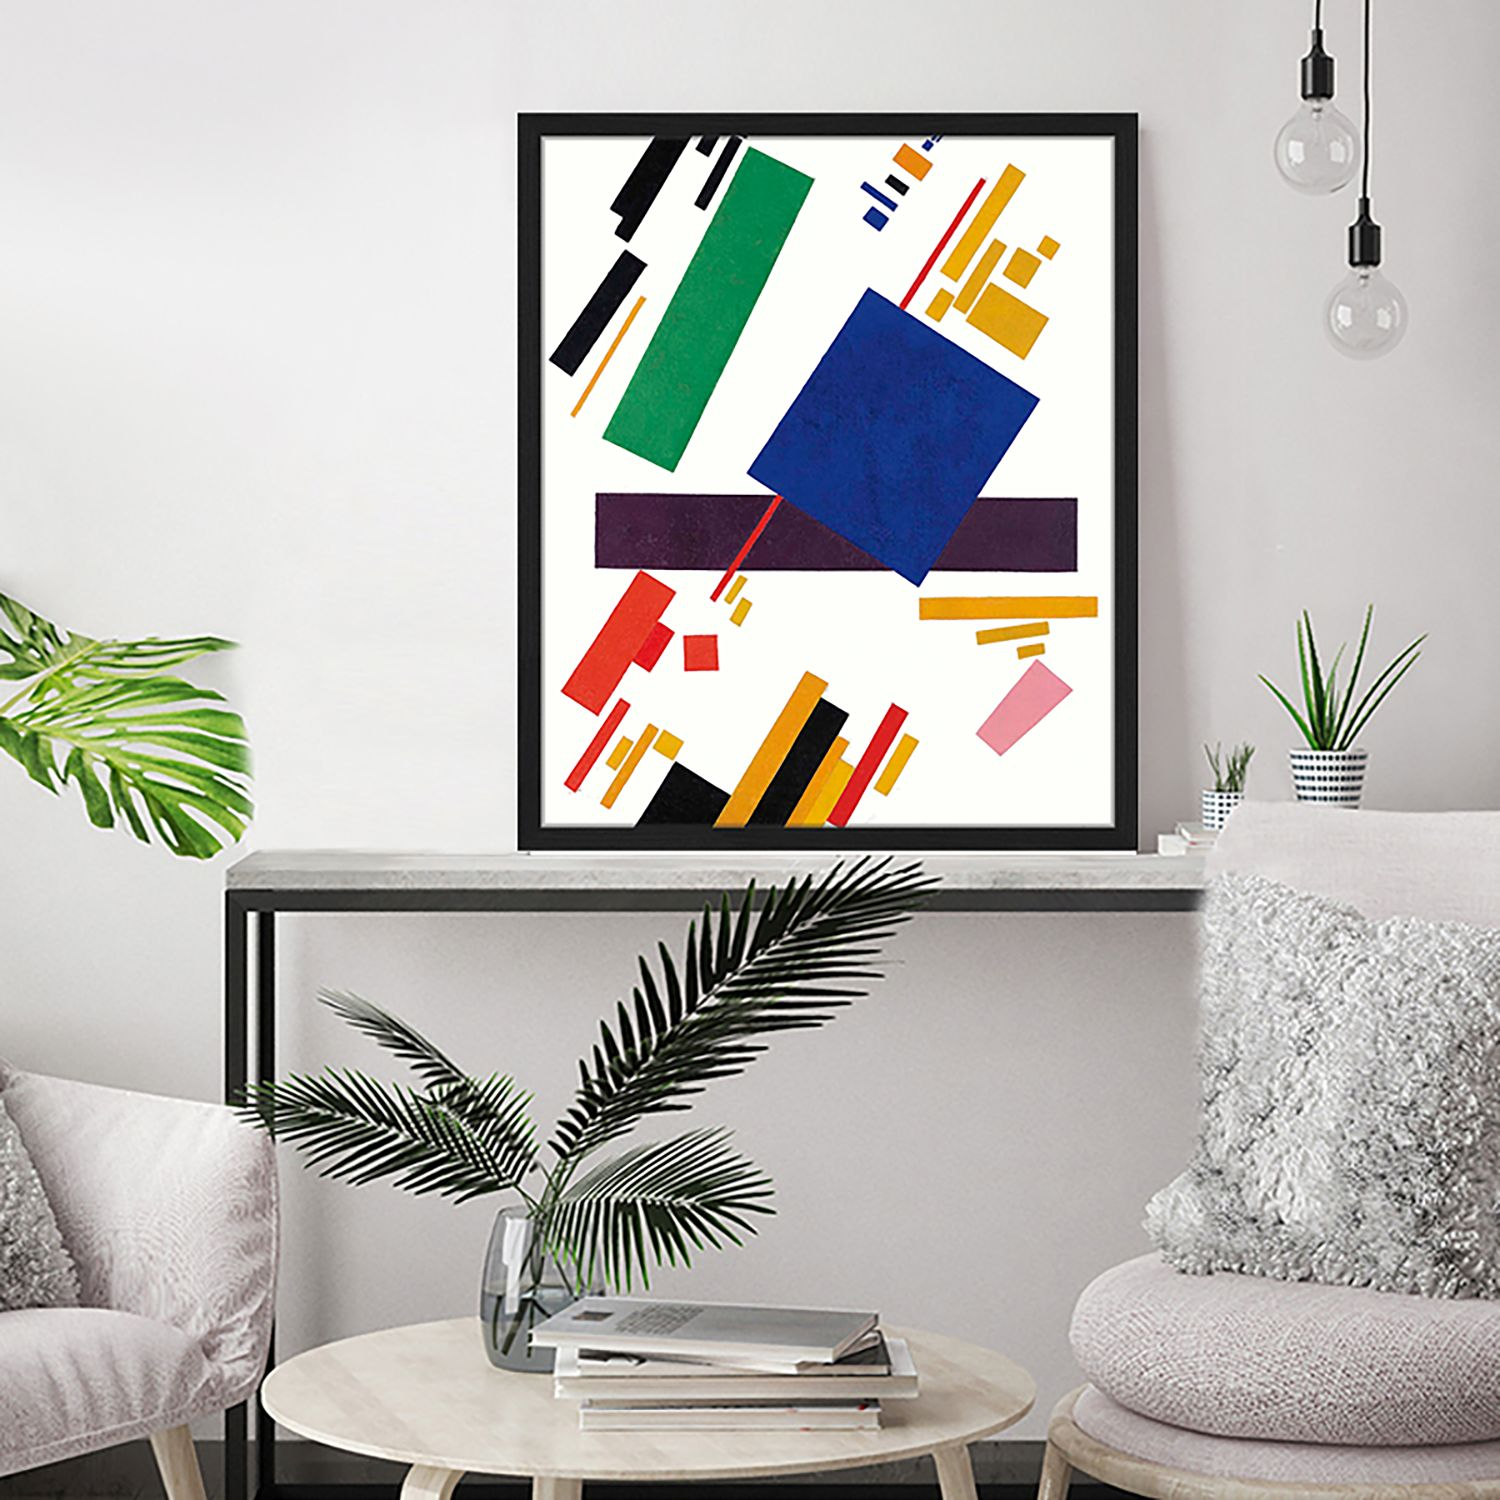 Bild Geometric Abstract, Any Image